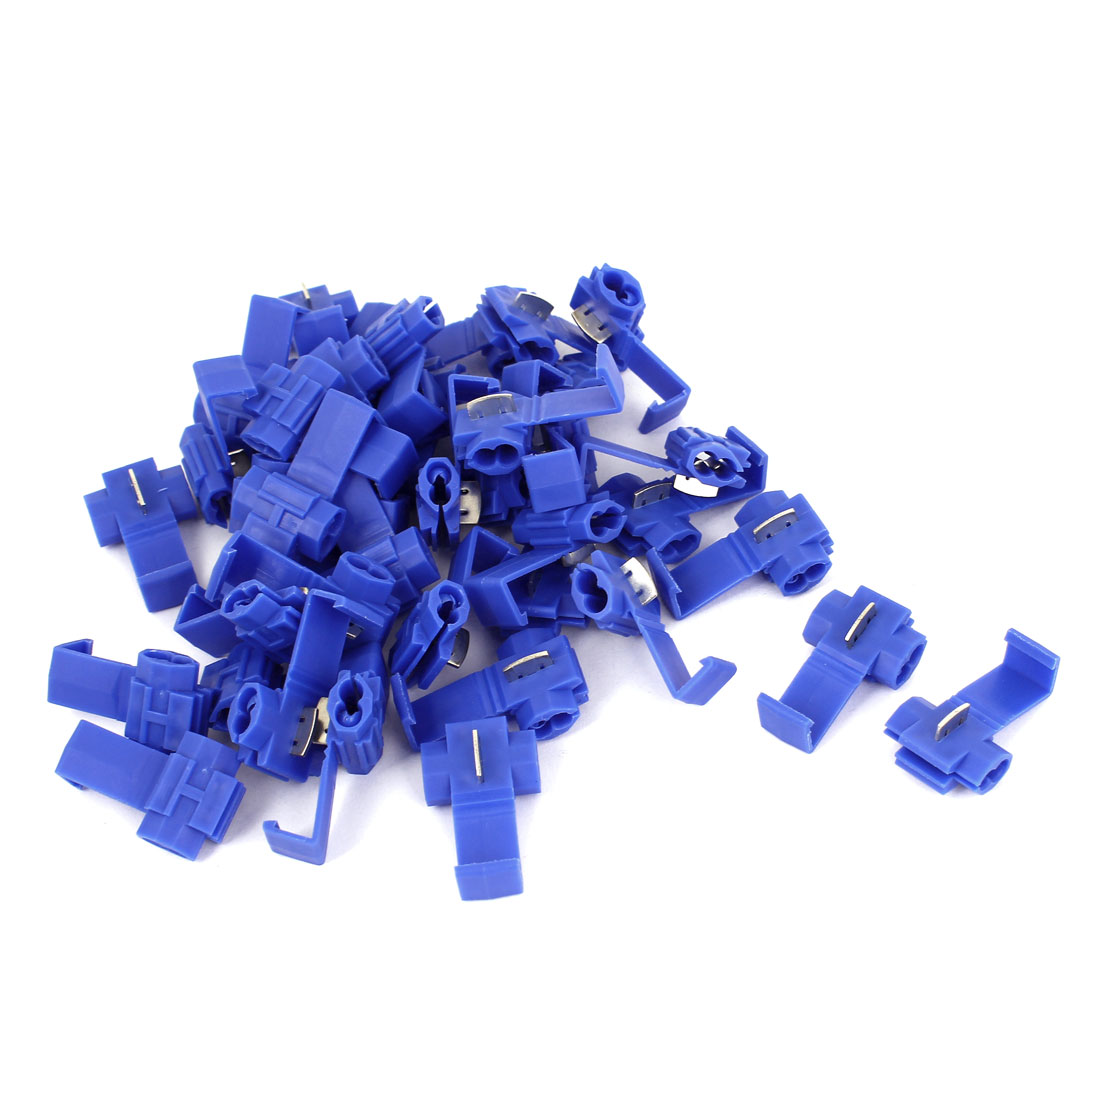 Car Clip Solderless Wire Quick Splice Connector 40pcs Blue for 2.5mm2 Cable